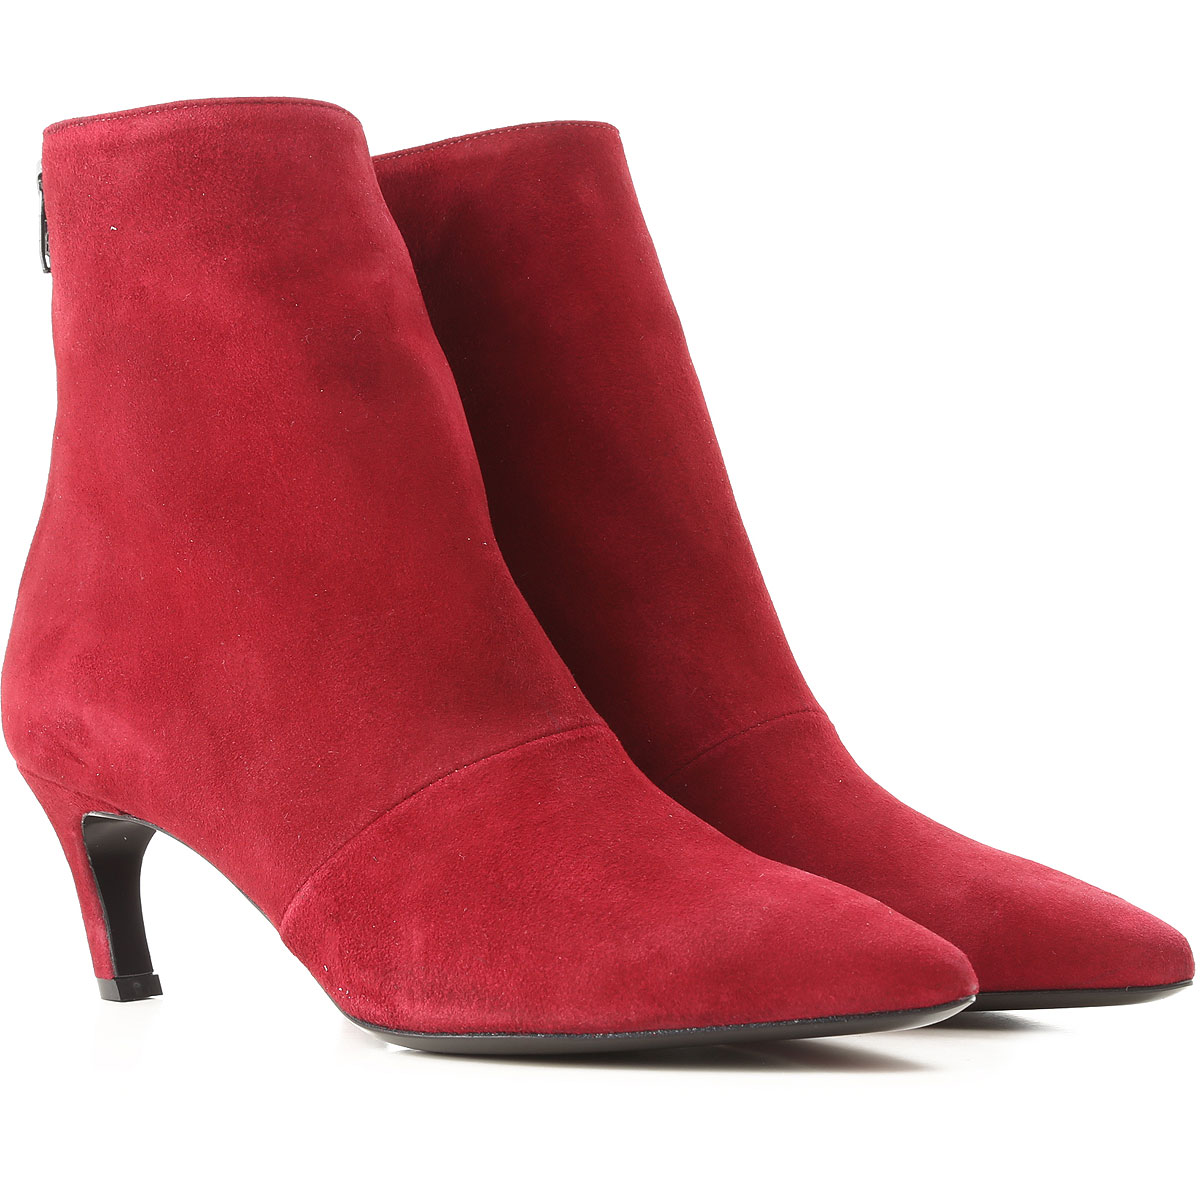 Image of Marc Ellis Boots for Women, Booties, Rubin Red, Suede leather, 2017, 10 6 7 8 9